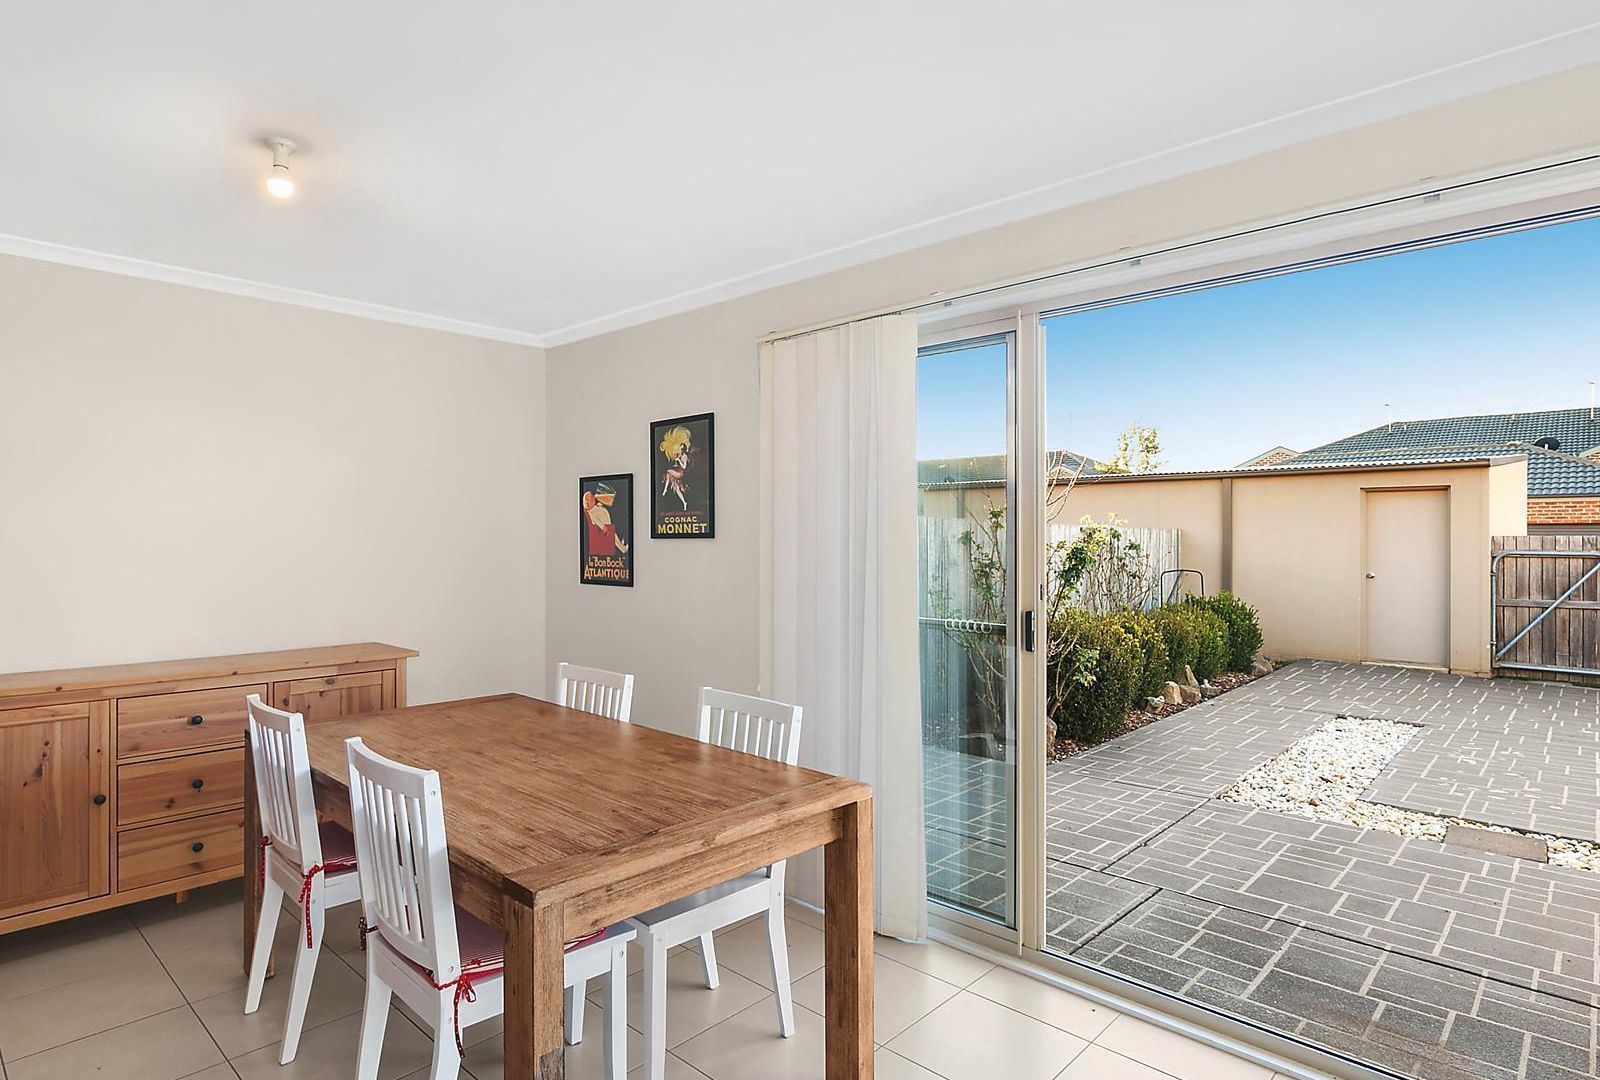 91 Mary Gillespie Avenue, Gungahlin ACT 2912, Image 1